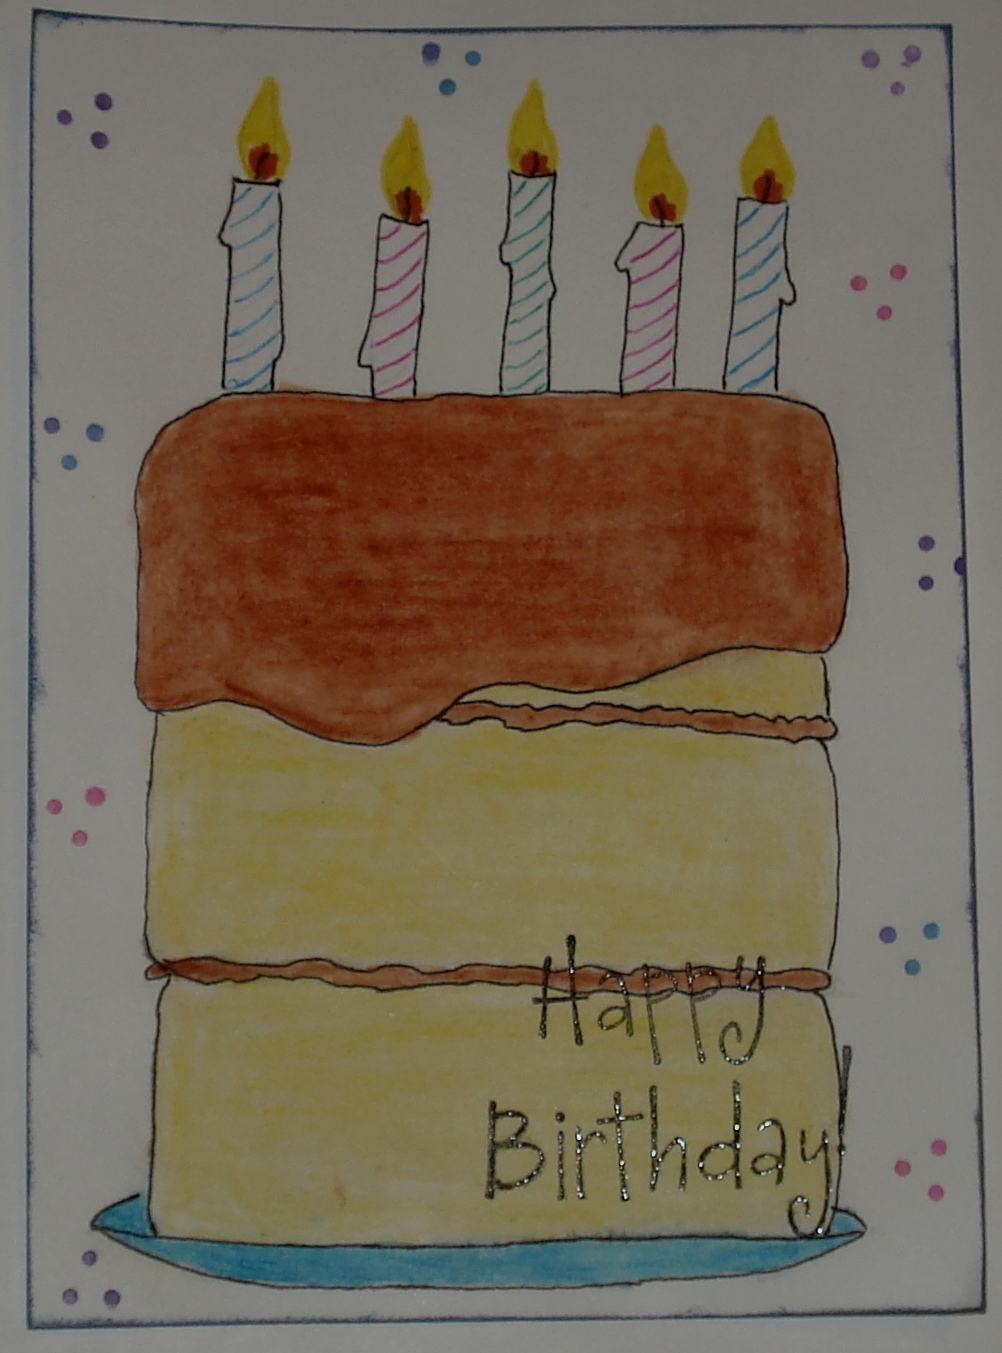 Mail Me Some Art Happy Birthday Cake Post Card Swap Send By July